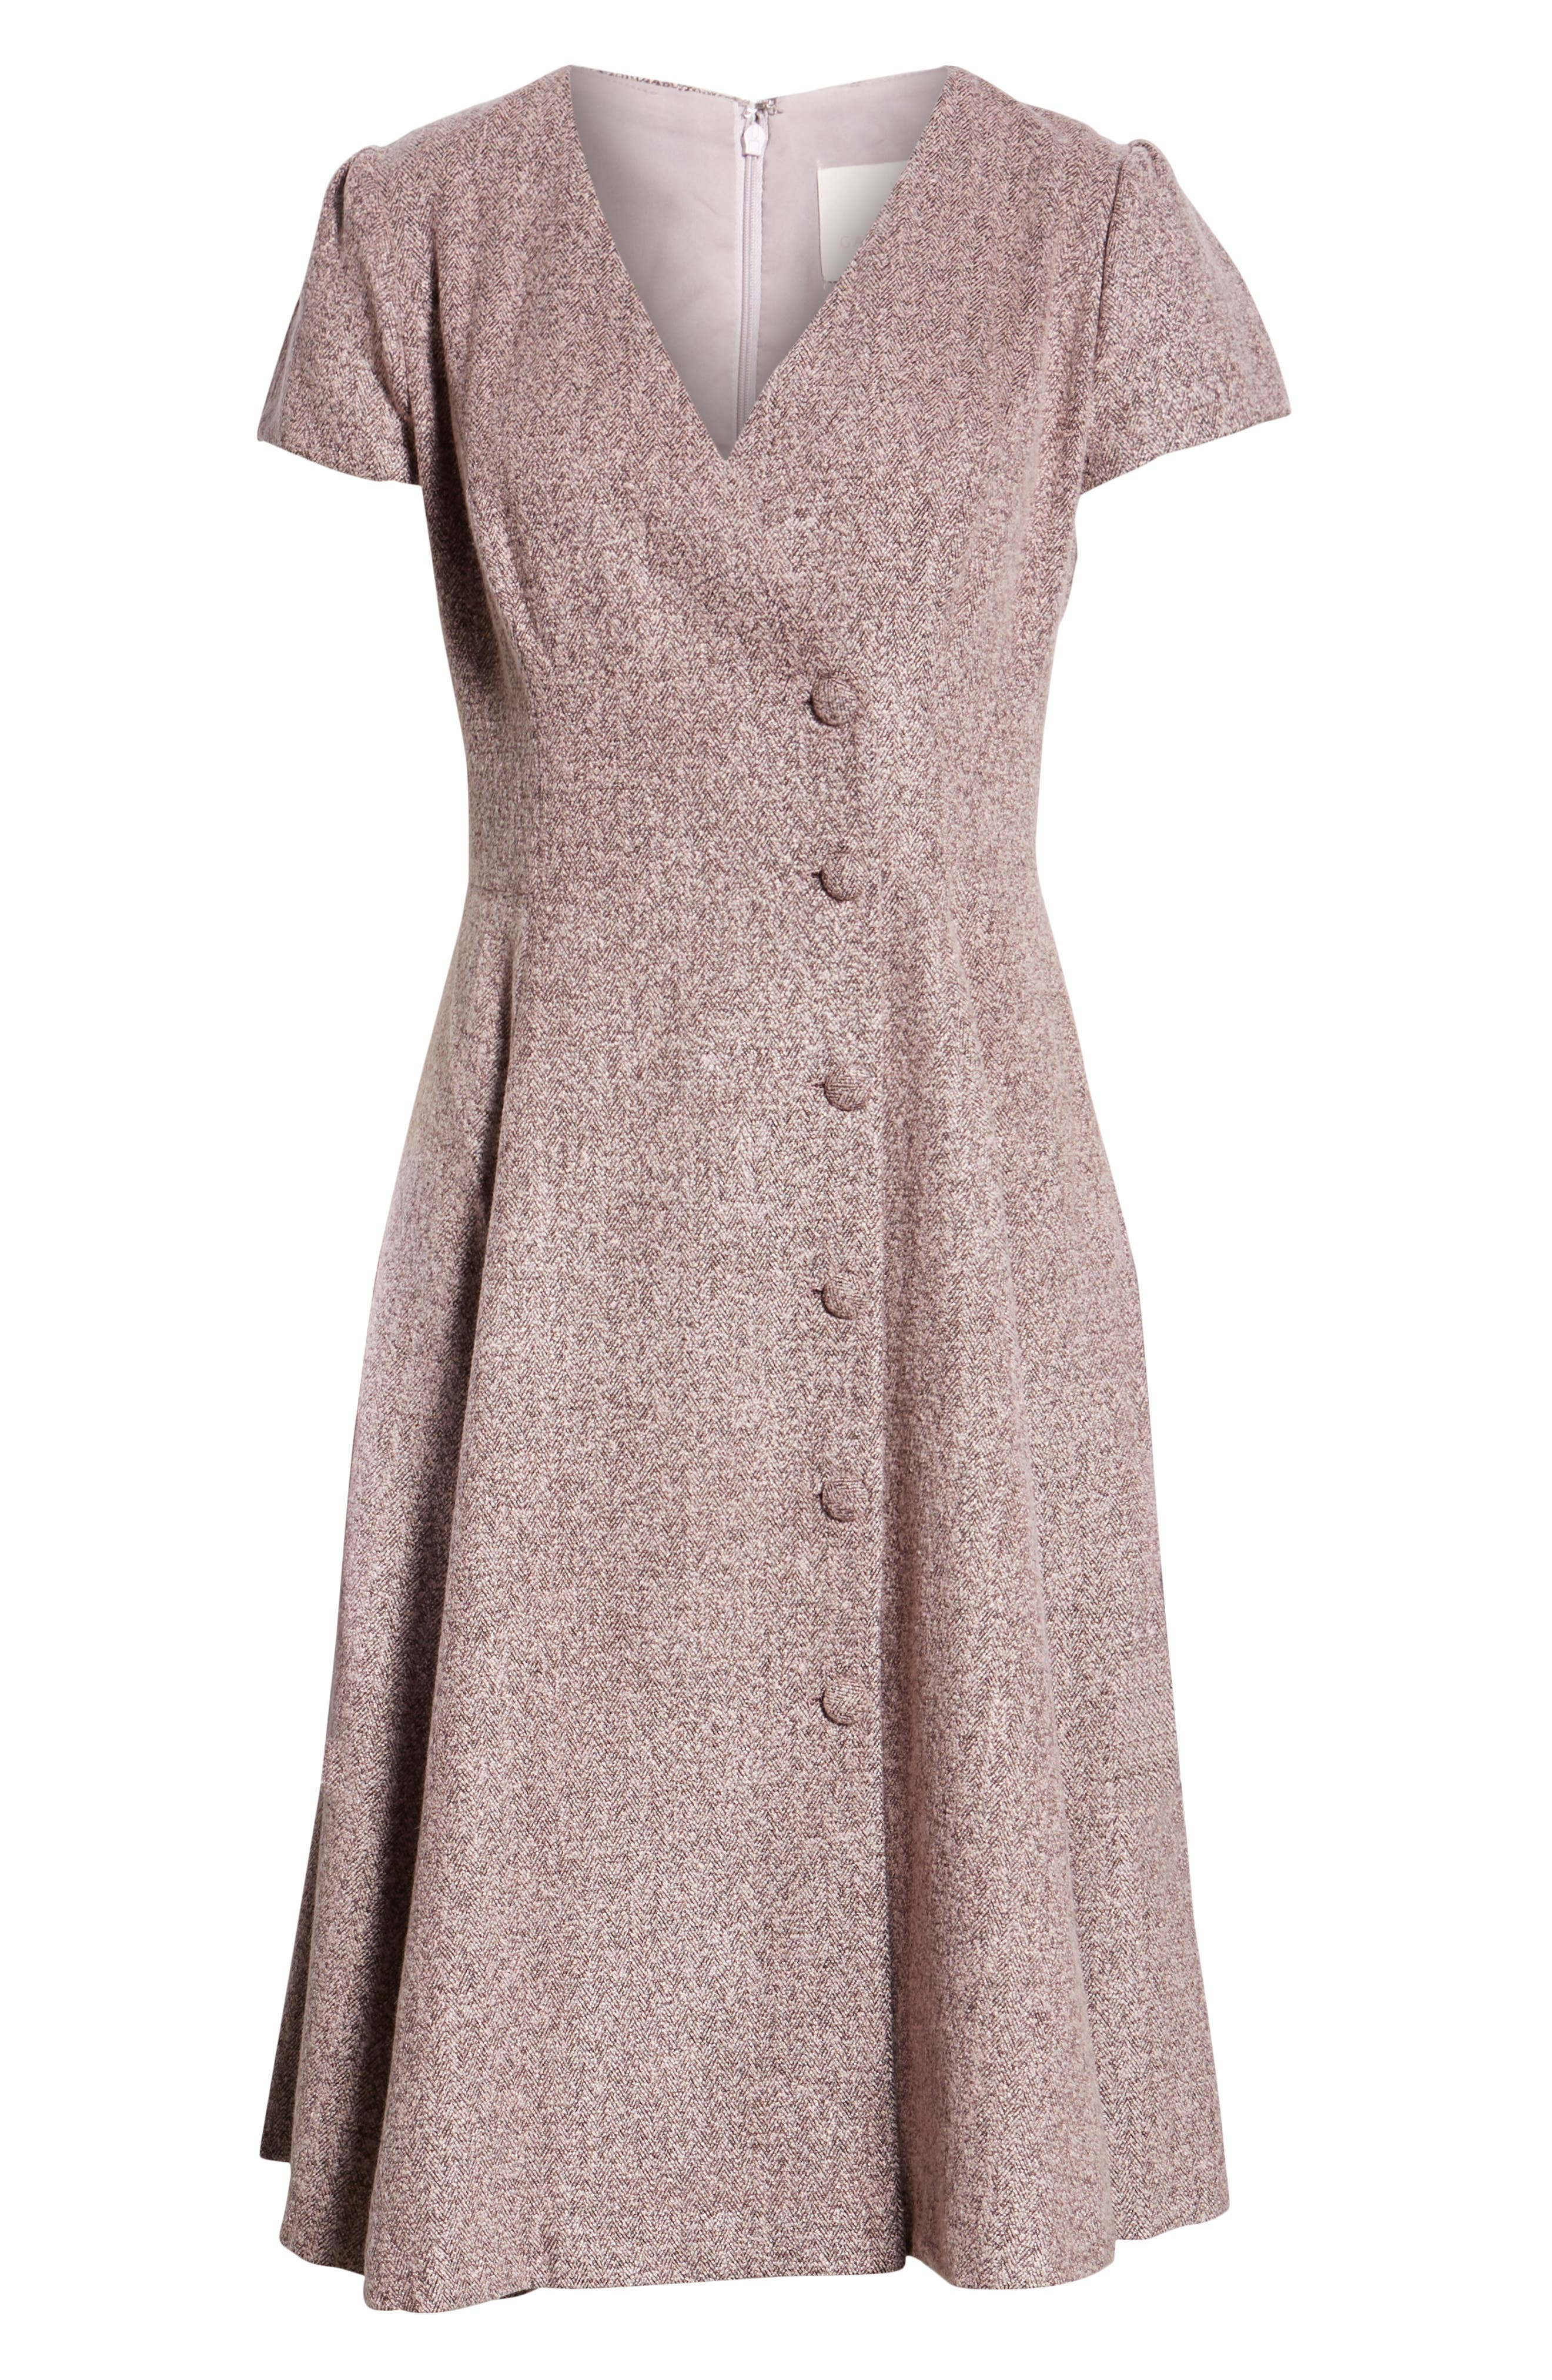 Agatha Dainty Tweed Dress,                             Alternate thumbnail 6, color,                             650